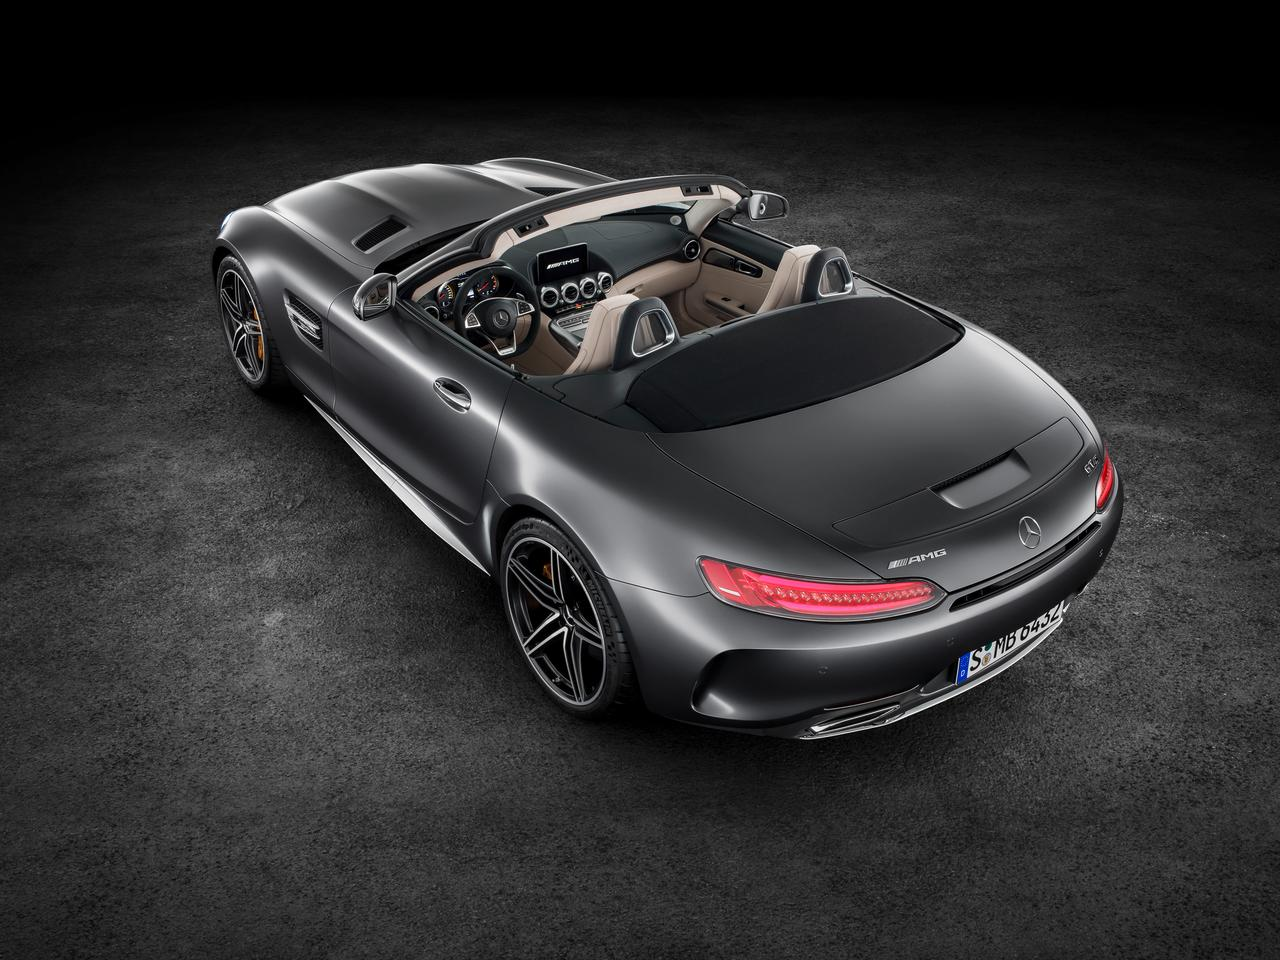 The AMG GT Roadster shares its interior with the coupe